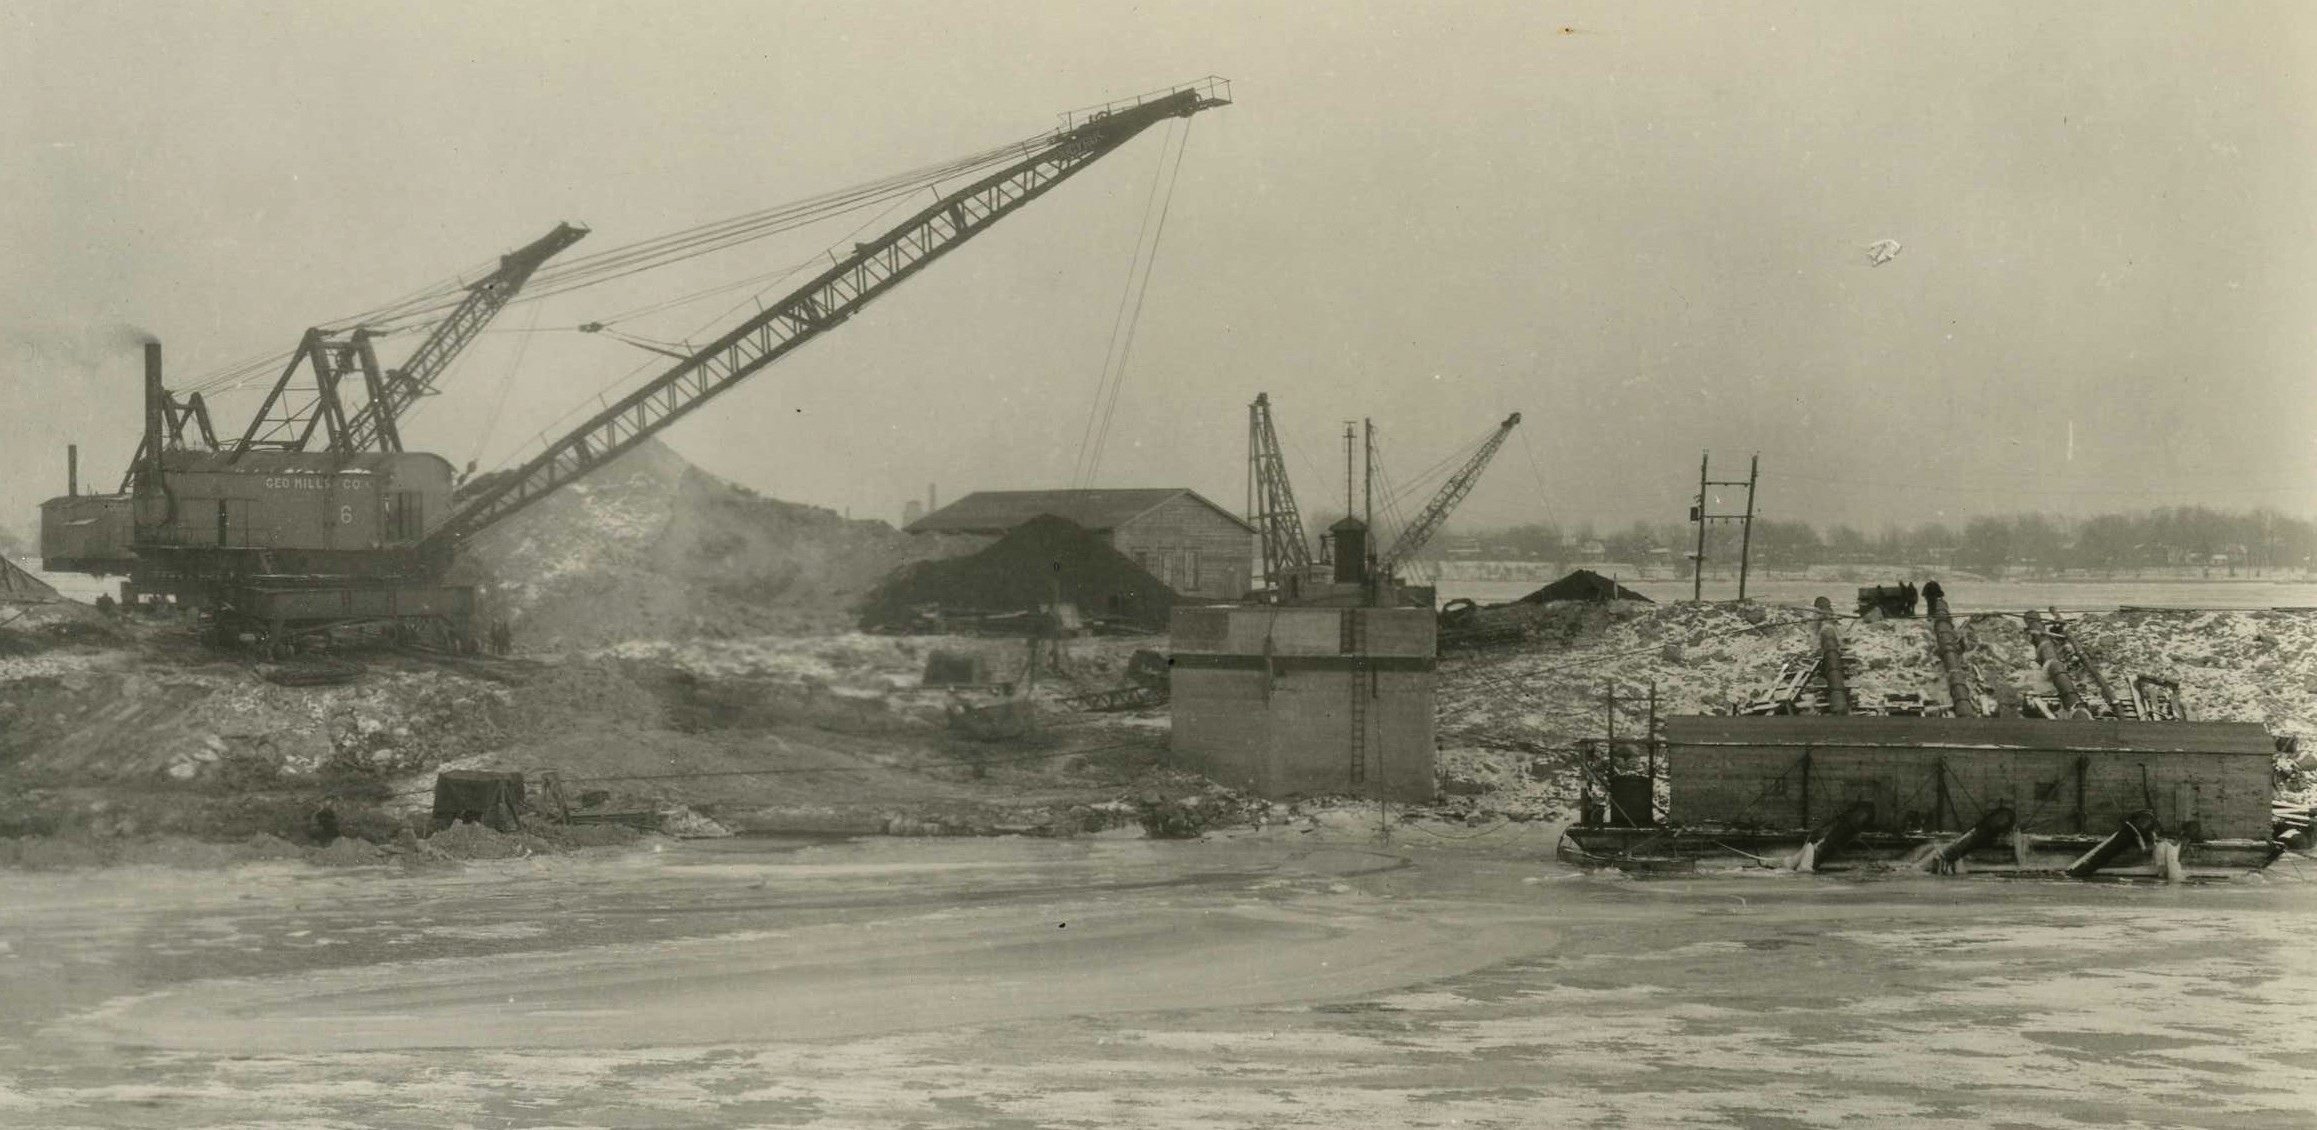 Photo by U.S. Army Corps of Engineers